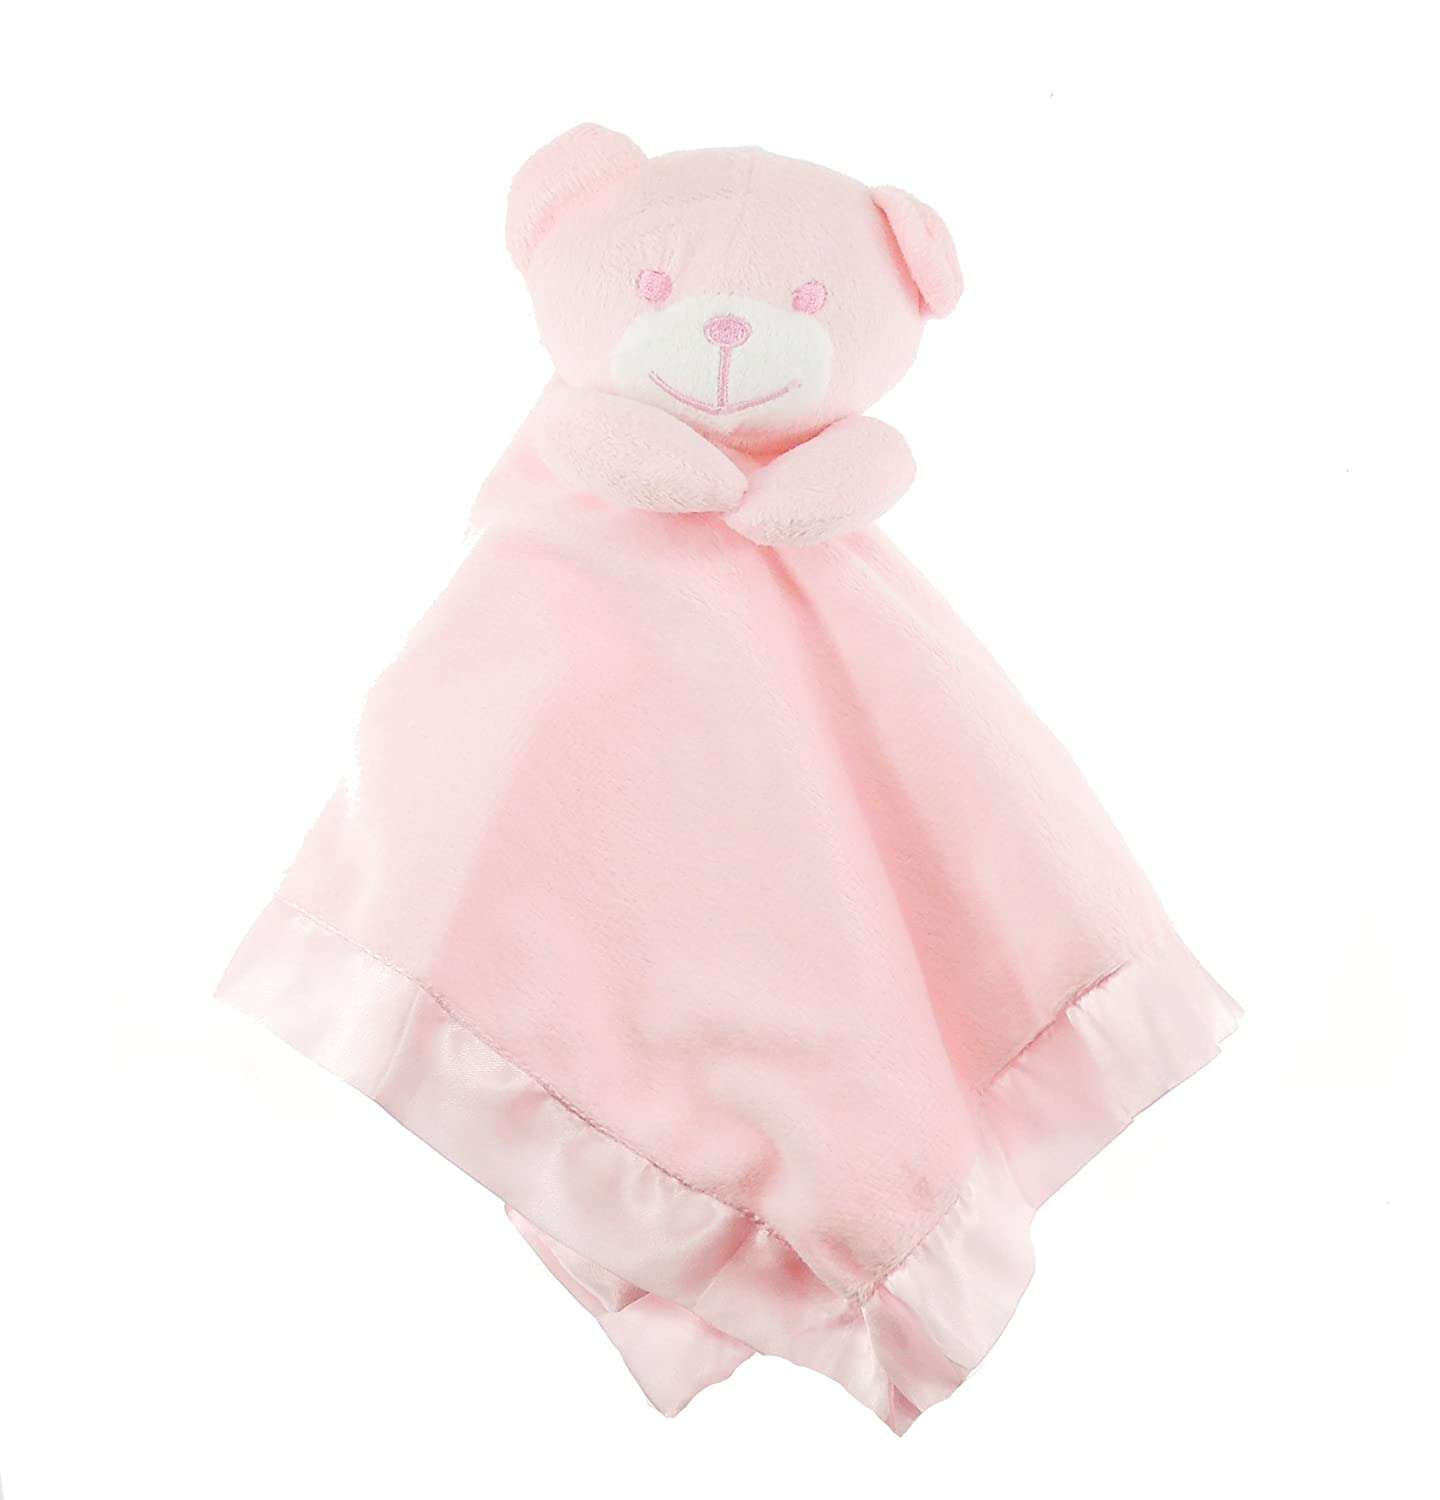 Gorgeous Soft Baby Girls Boys Security Teddy Bear Smiley Face Comforter Blanket Pink Glamour Girlz